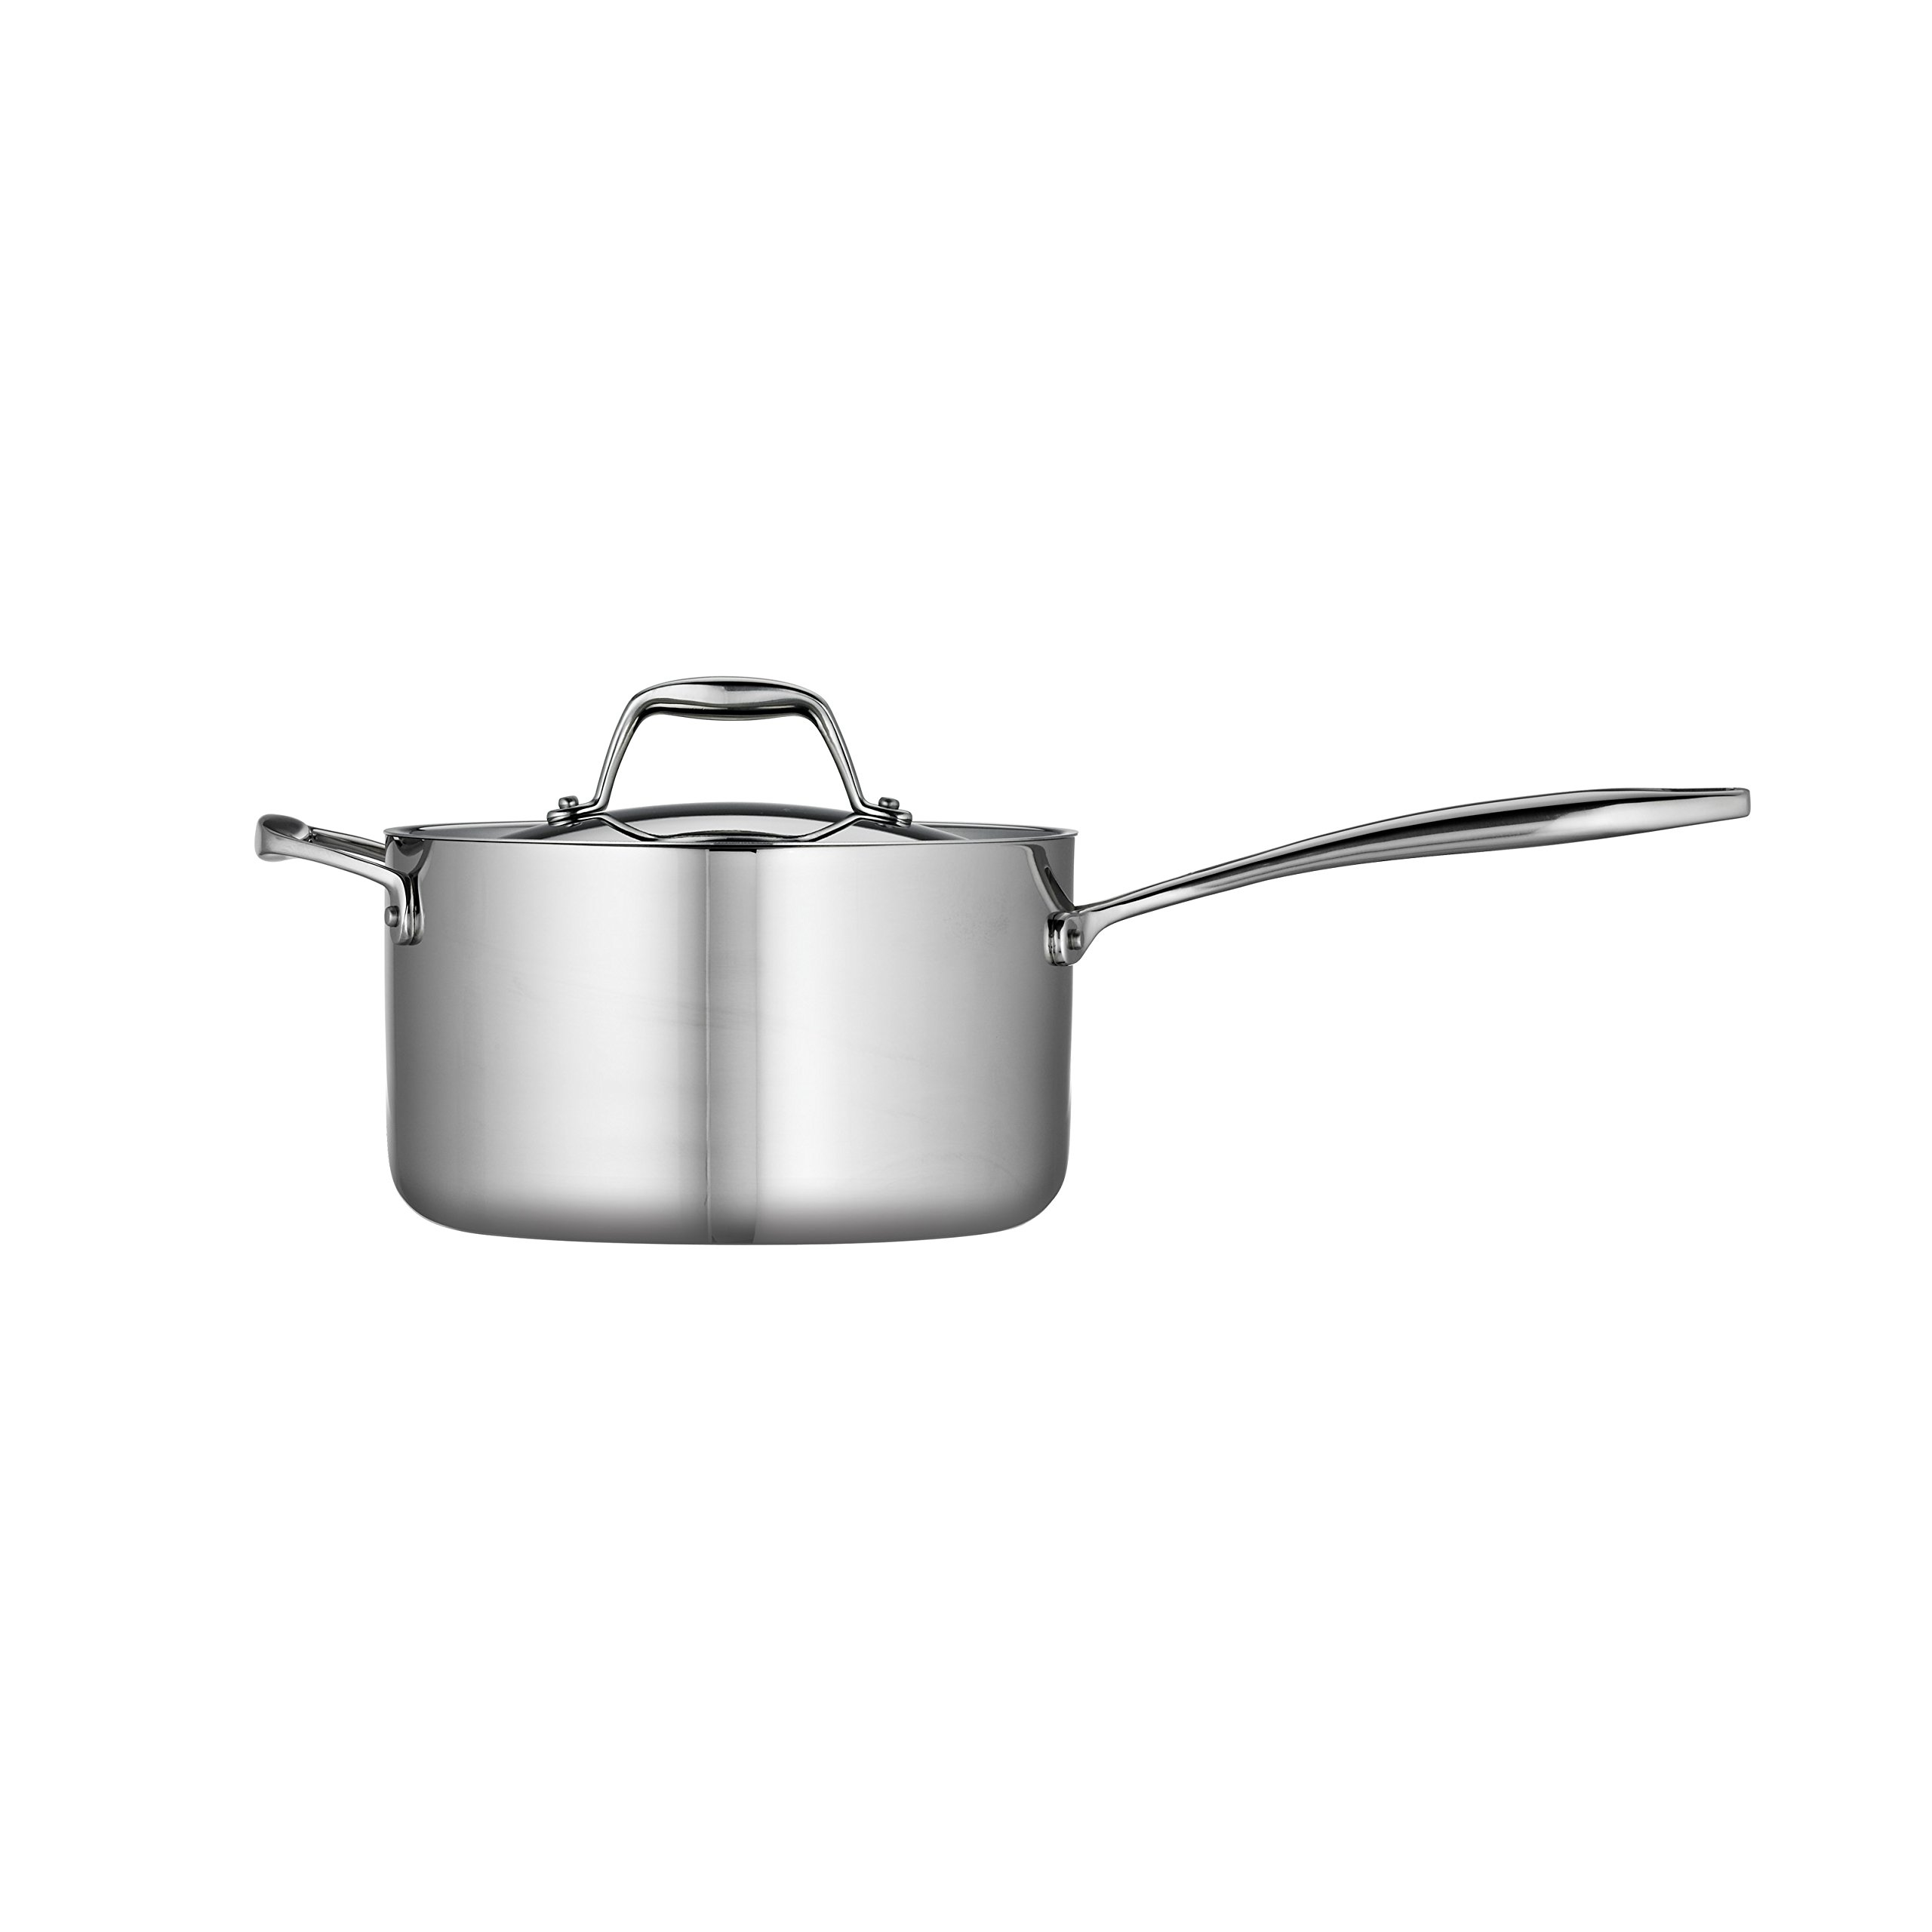 Tramontina 80116/024DS Gourmet Stainless Steel Induction-Ready Tri-Ply Clad Covered Sauce Pan with Helper Handle, 4-Quart, NSF-Certified, Made in Brazil